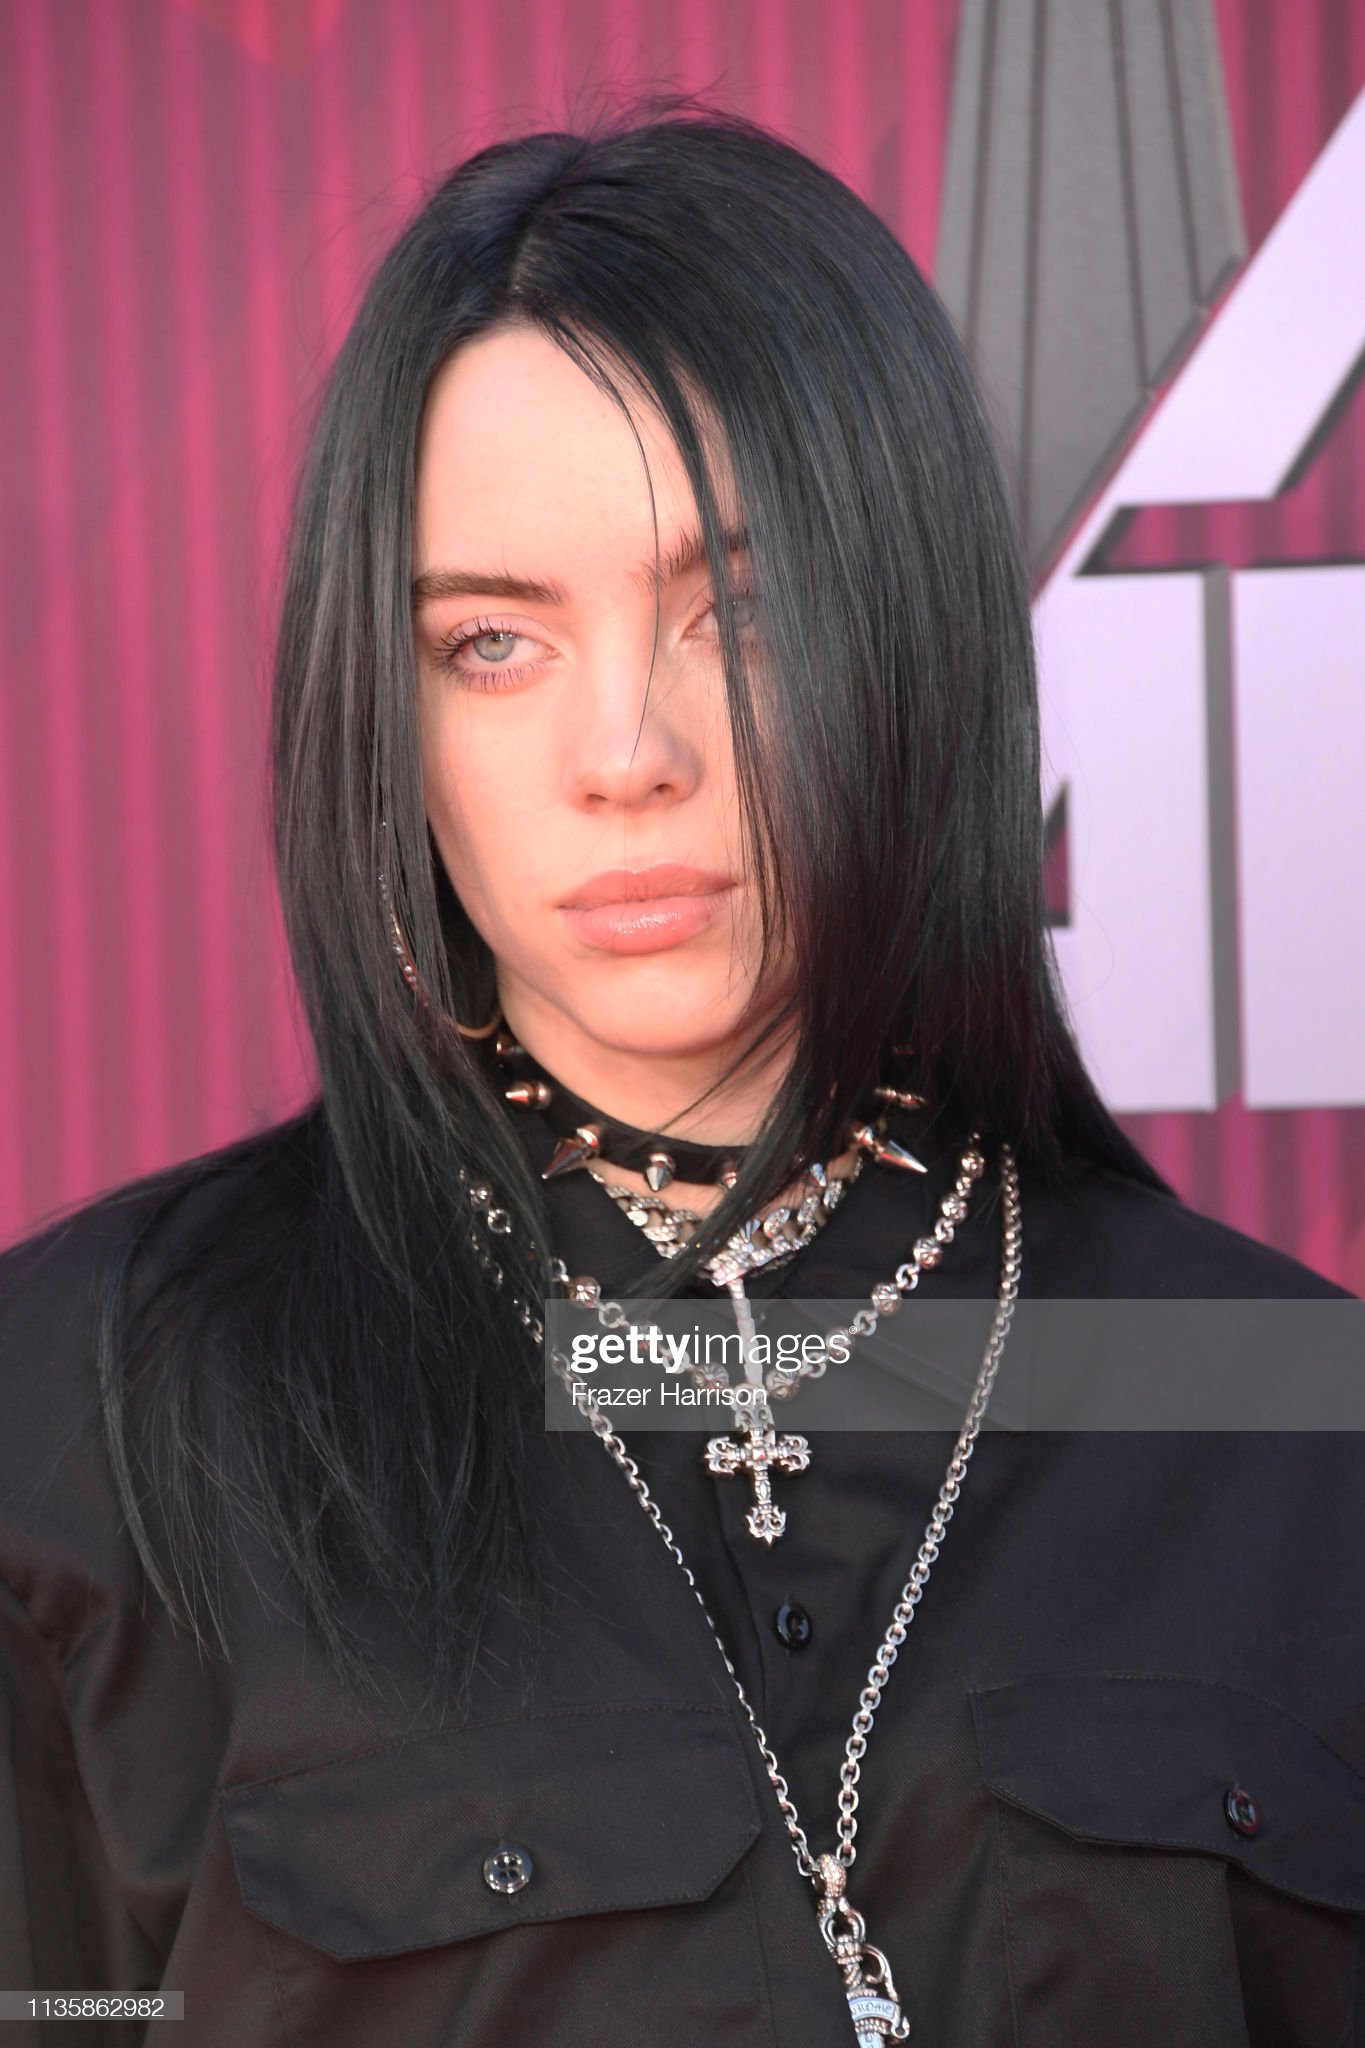 ¿Cuánto mide Billie Eilish? - Altura - Real height Billie-eilish-attends-the-2019-iheartradio-music-awards-which-live-picture-id1135862982?s=2048x2048